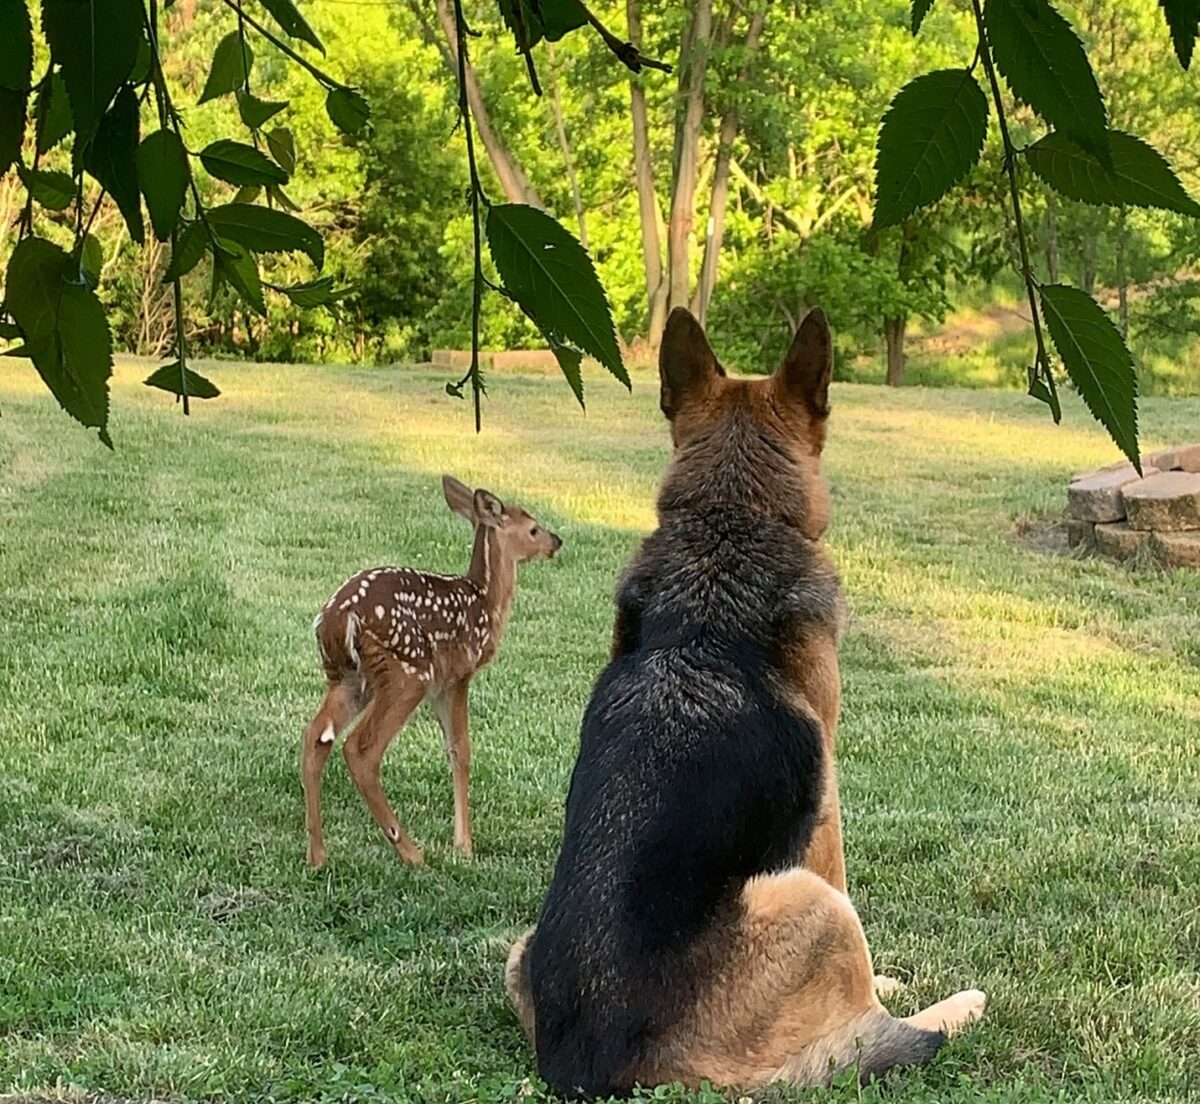 Compassion Outlawed: All Injured and Orphaned Fawns in Ohio Must Die.